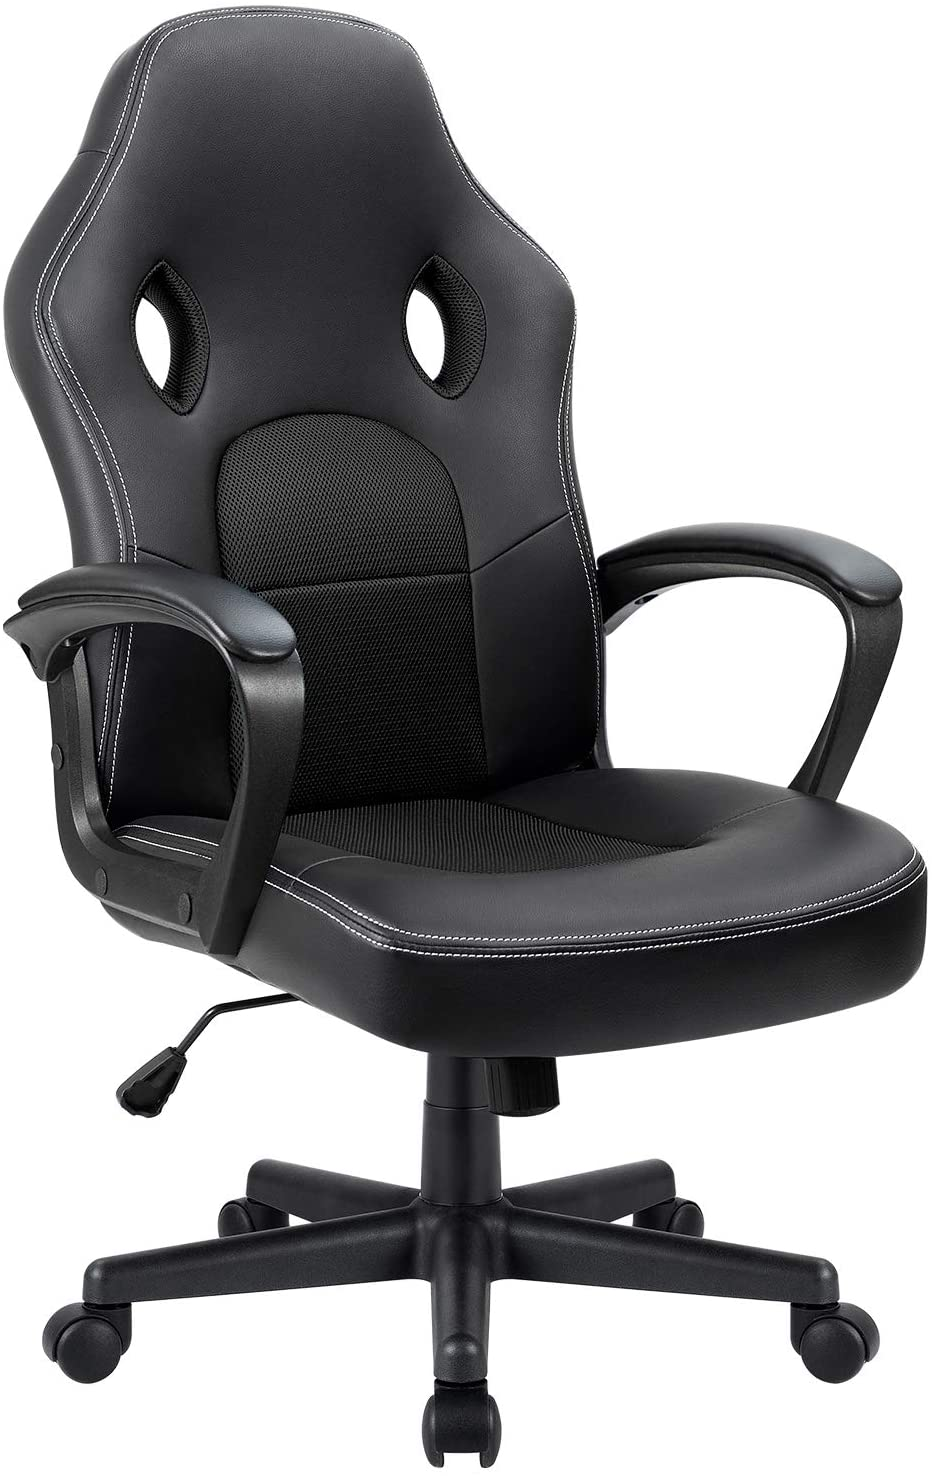 Furmax Leather – Best Racing Gaming Chair Under 200